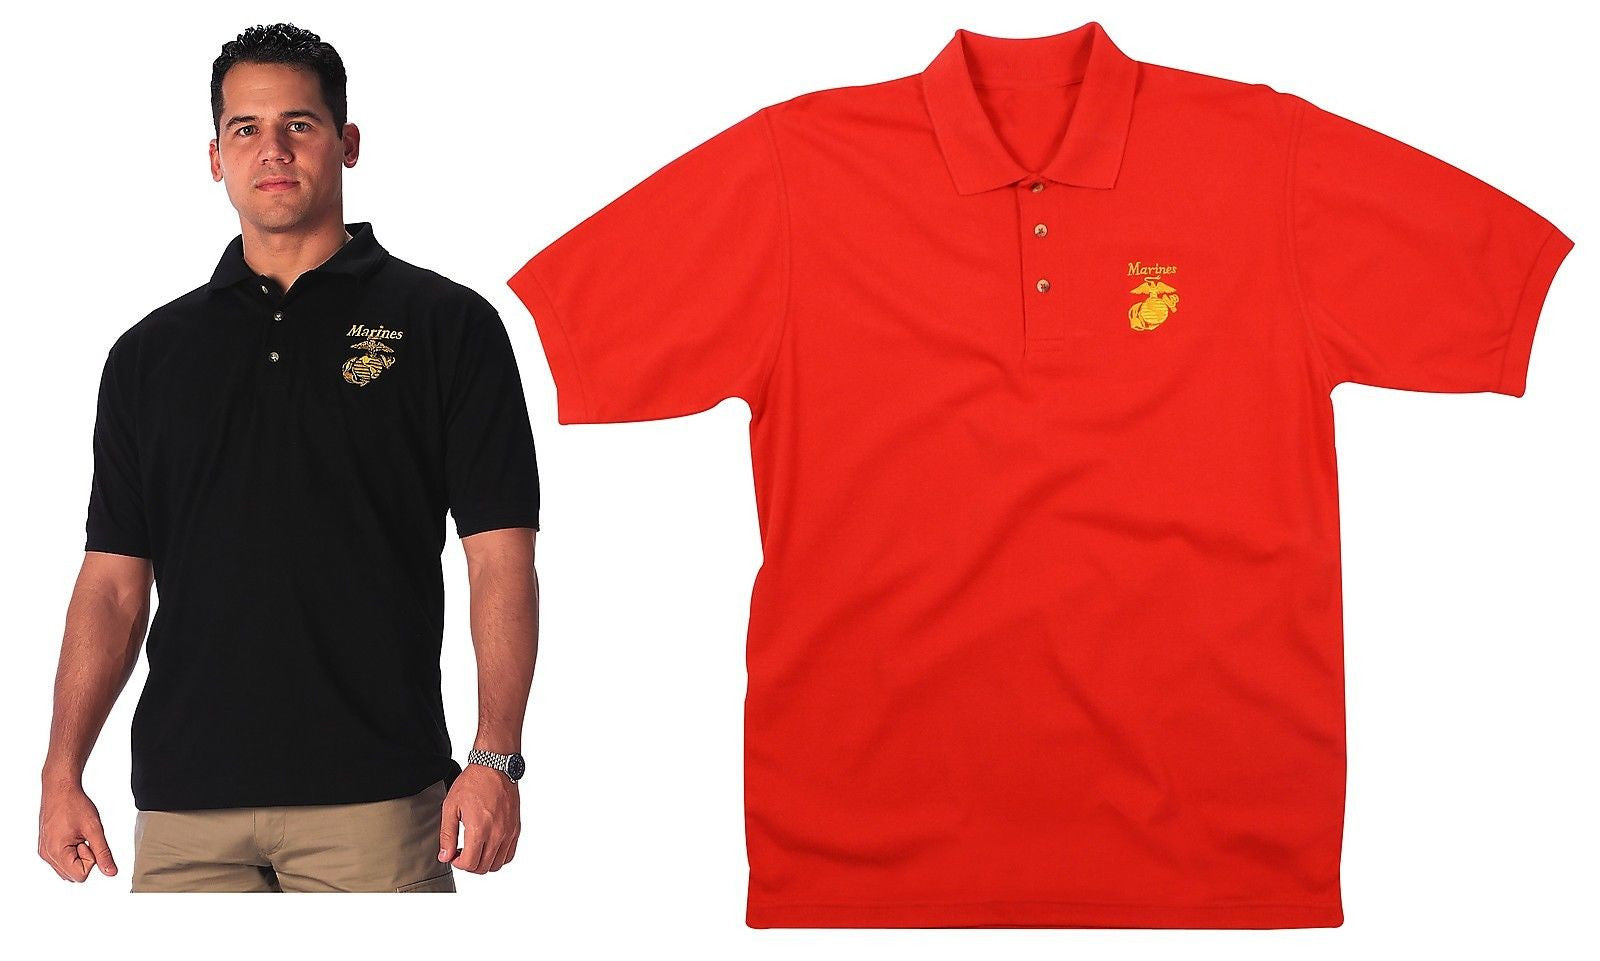 Marines collared polo shirt gold embroidered military for Golf shirt vs polo shirt